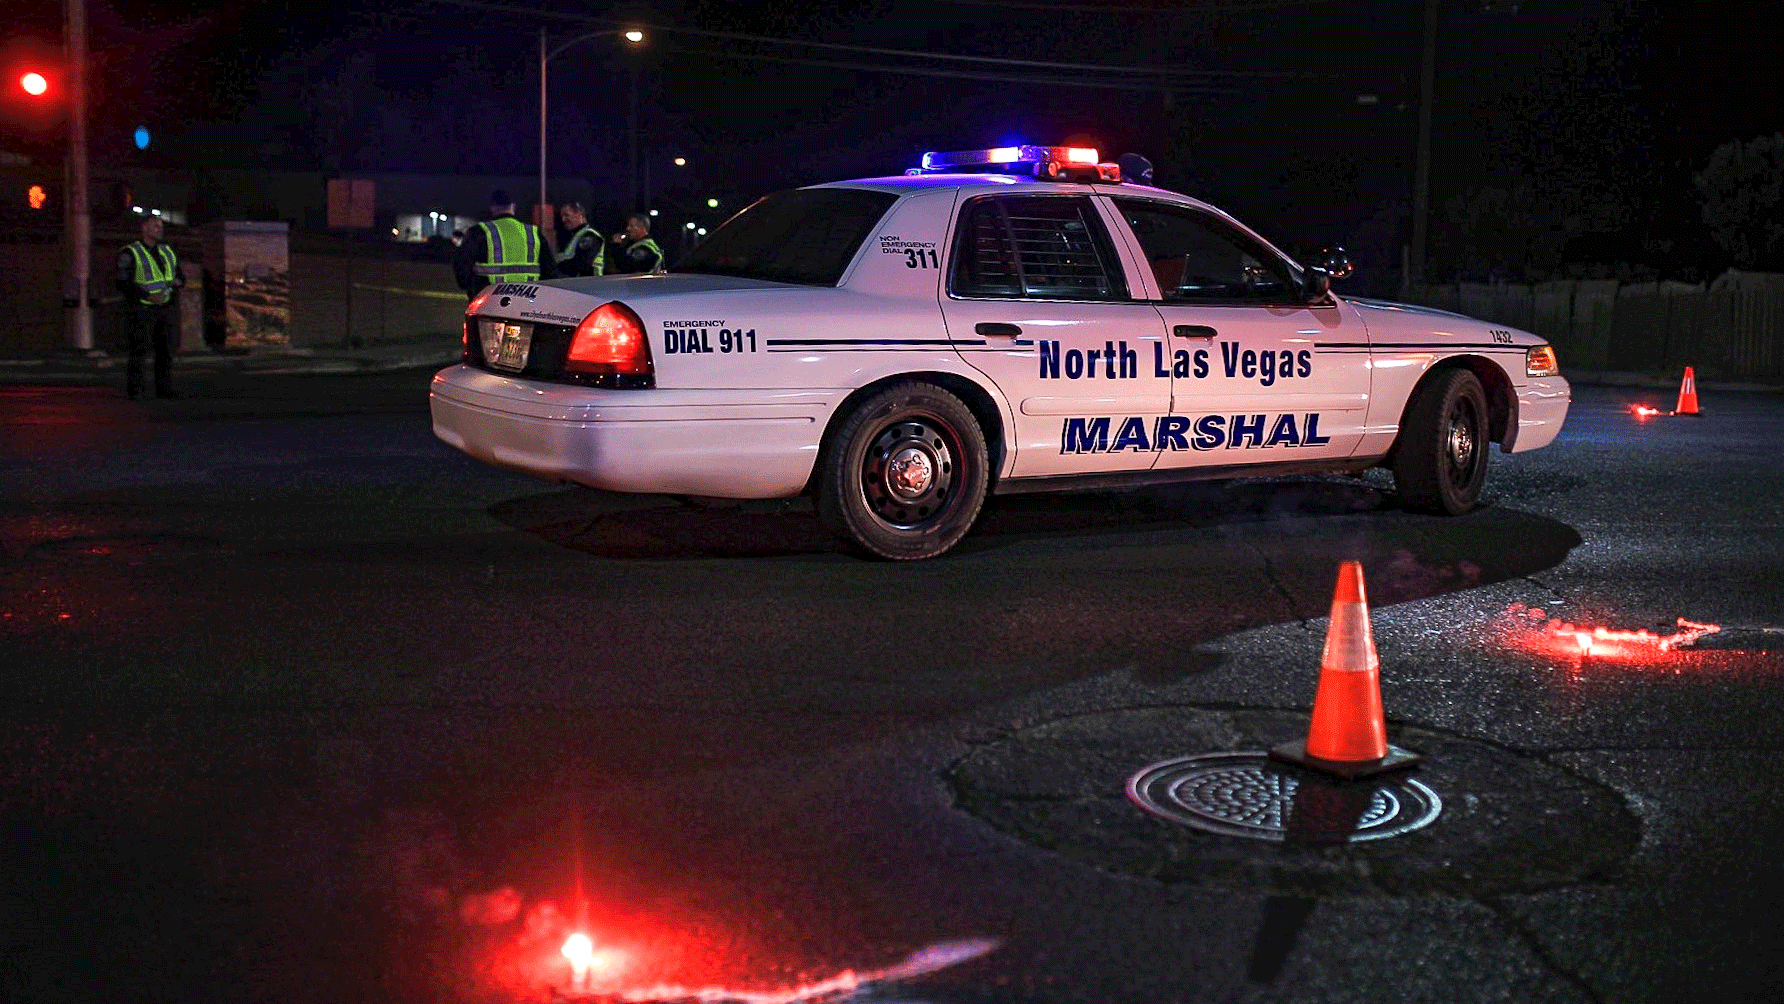 North Las Vegas police are at the scene of a deadly crash on Jan. 18, 2018. (Gai Phanalasy/FOX5)